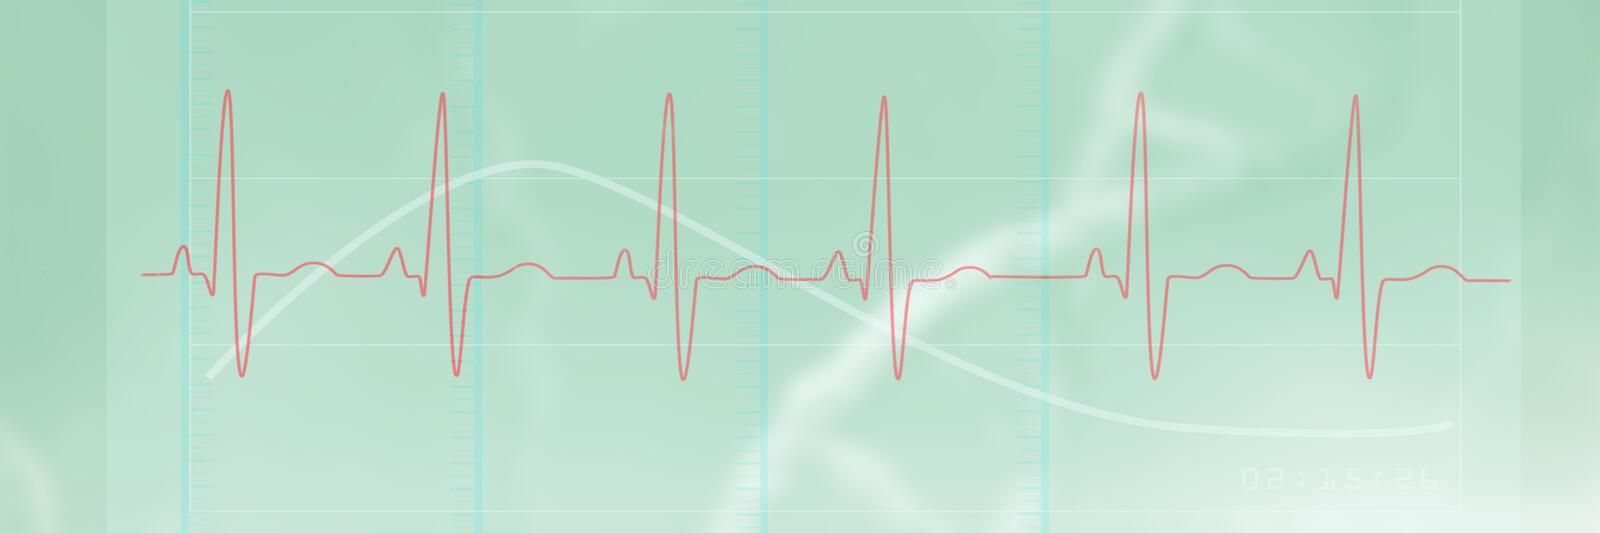 Composite image of digitally generated image of electrocardiography 3d. Digitally generated image of electrocardiography against dna strands on green background vector illustration